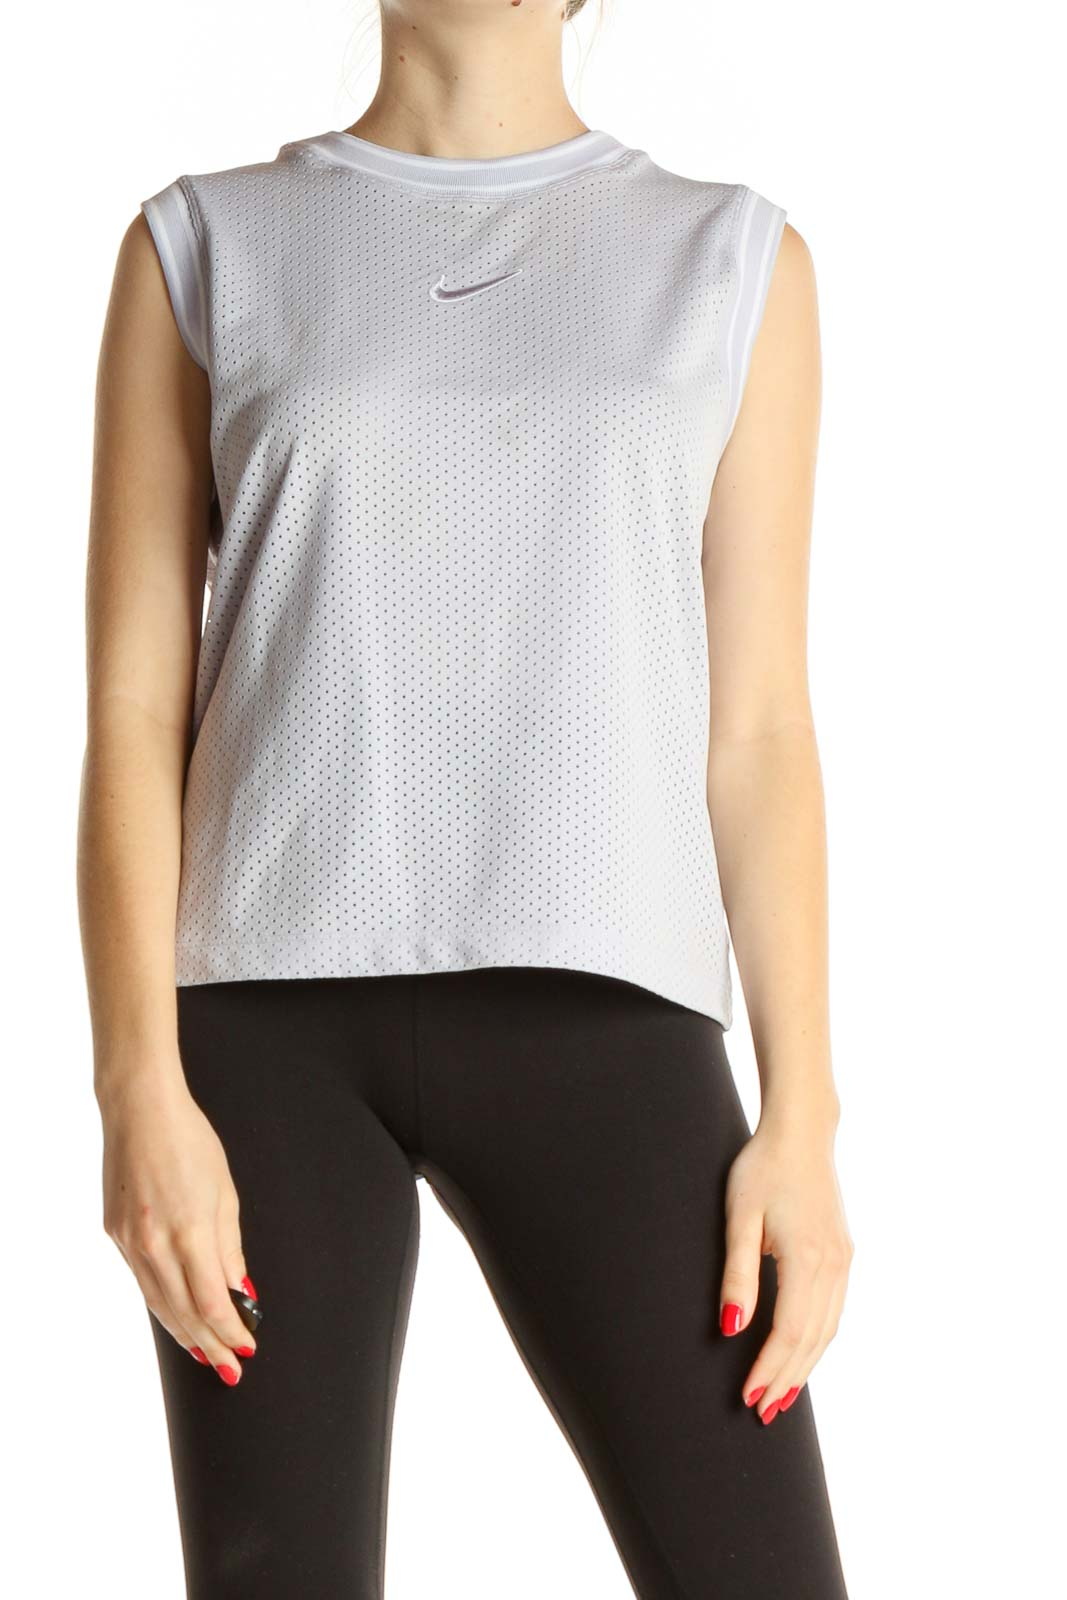 White Solid Activewear Tank Top Front